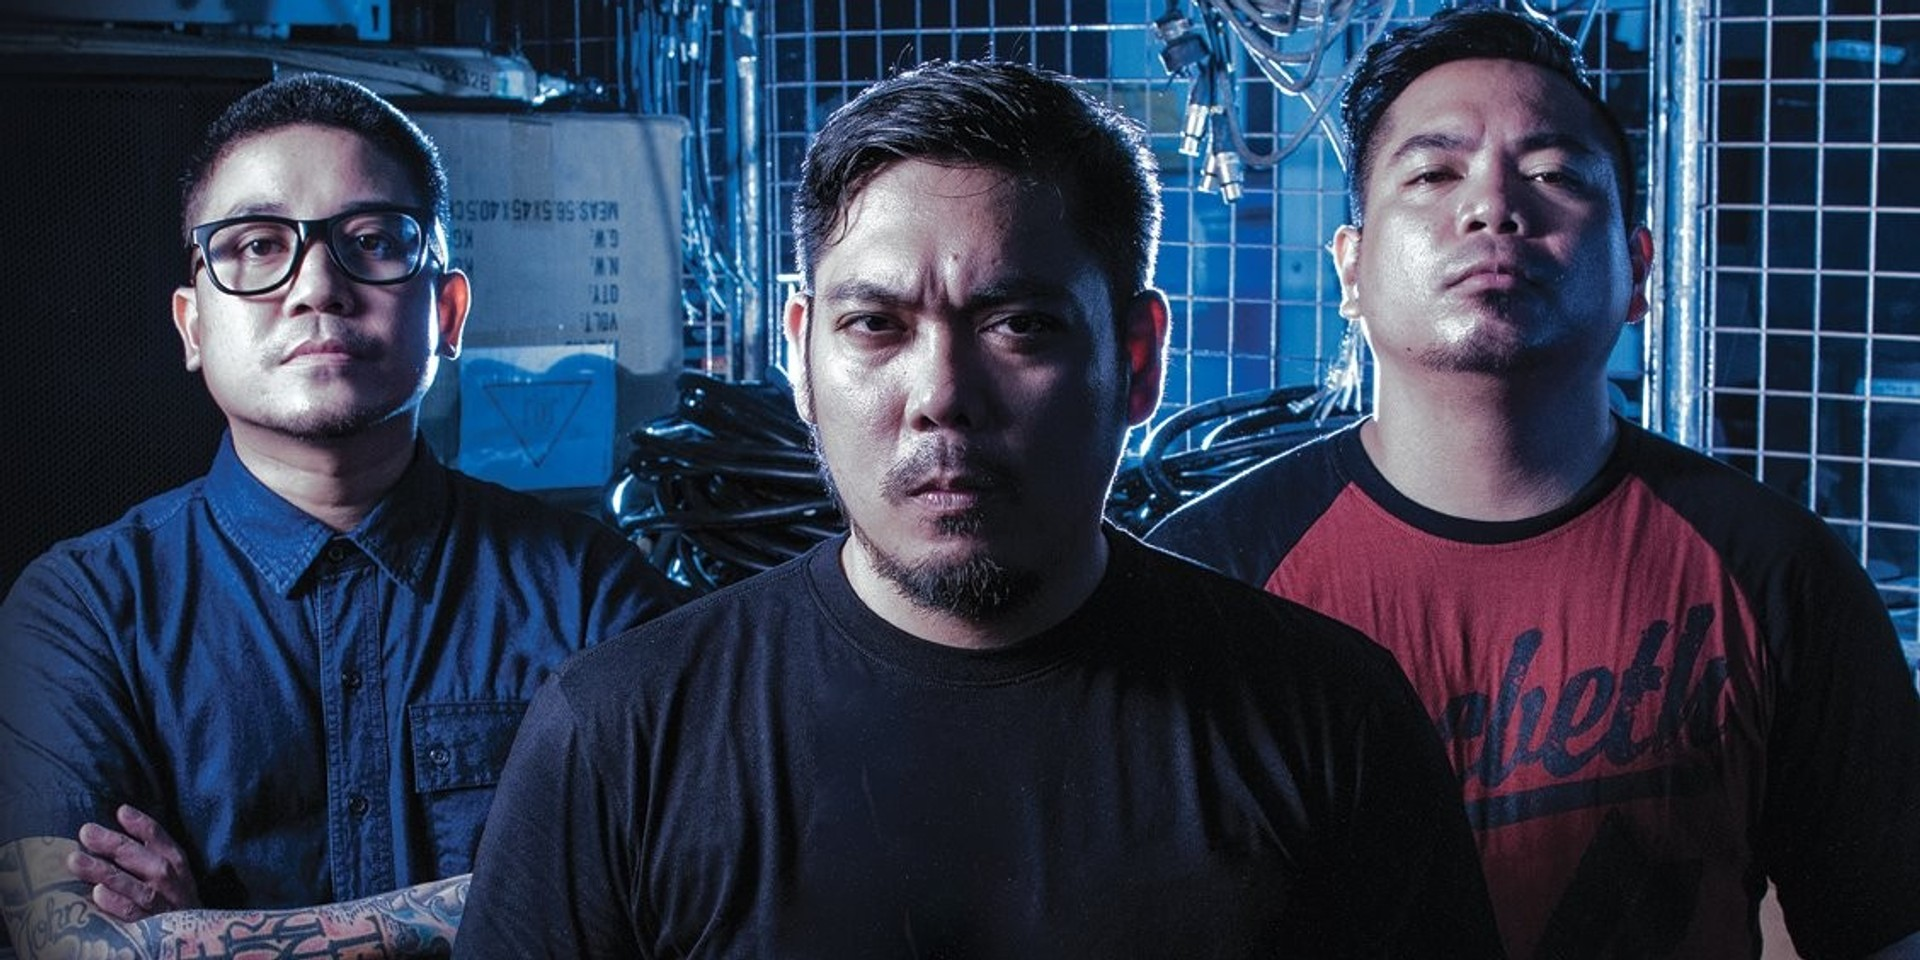 SkyChurch to release 'Perspective' video